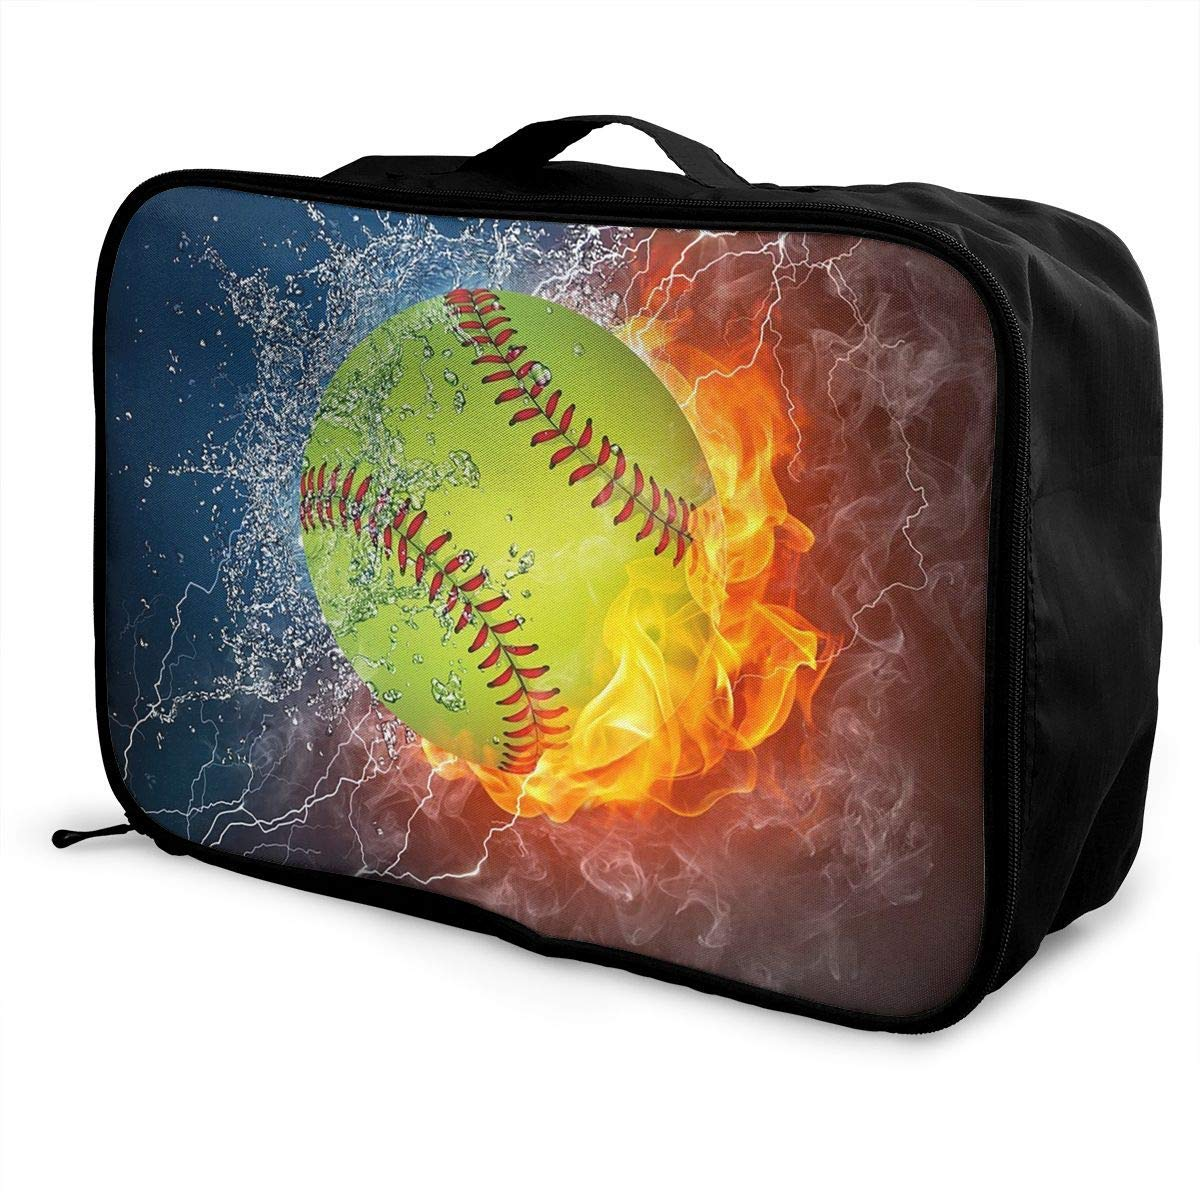 Portable Luggage Duffel Bag Fire Softball Travel Bags Carry-on In Trolley Handle